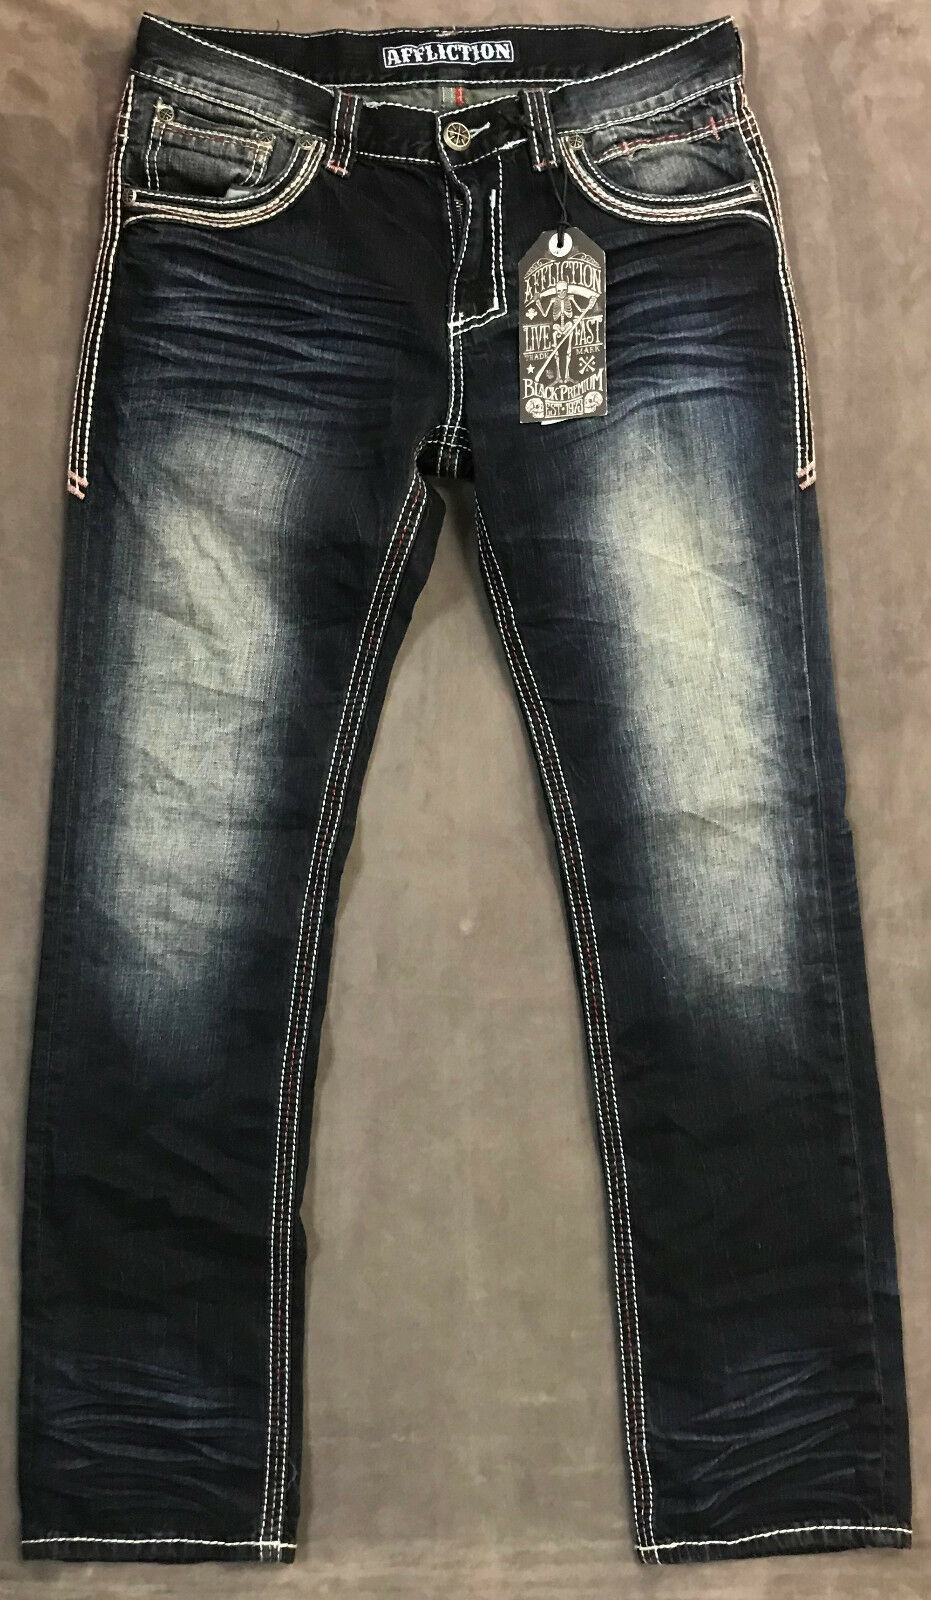 NEW AFFLICTION JEANS MENS ACE STRAIGHT FLEUR IN TULSA SZ 32